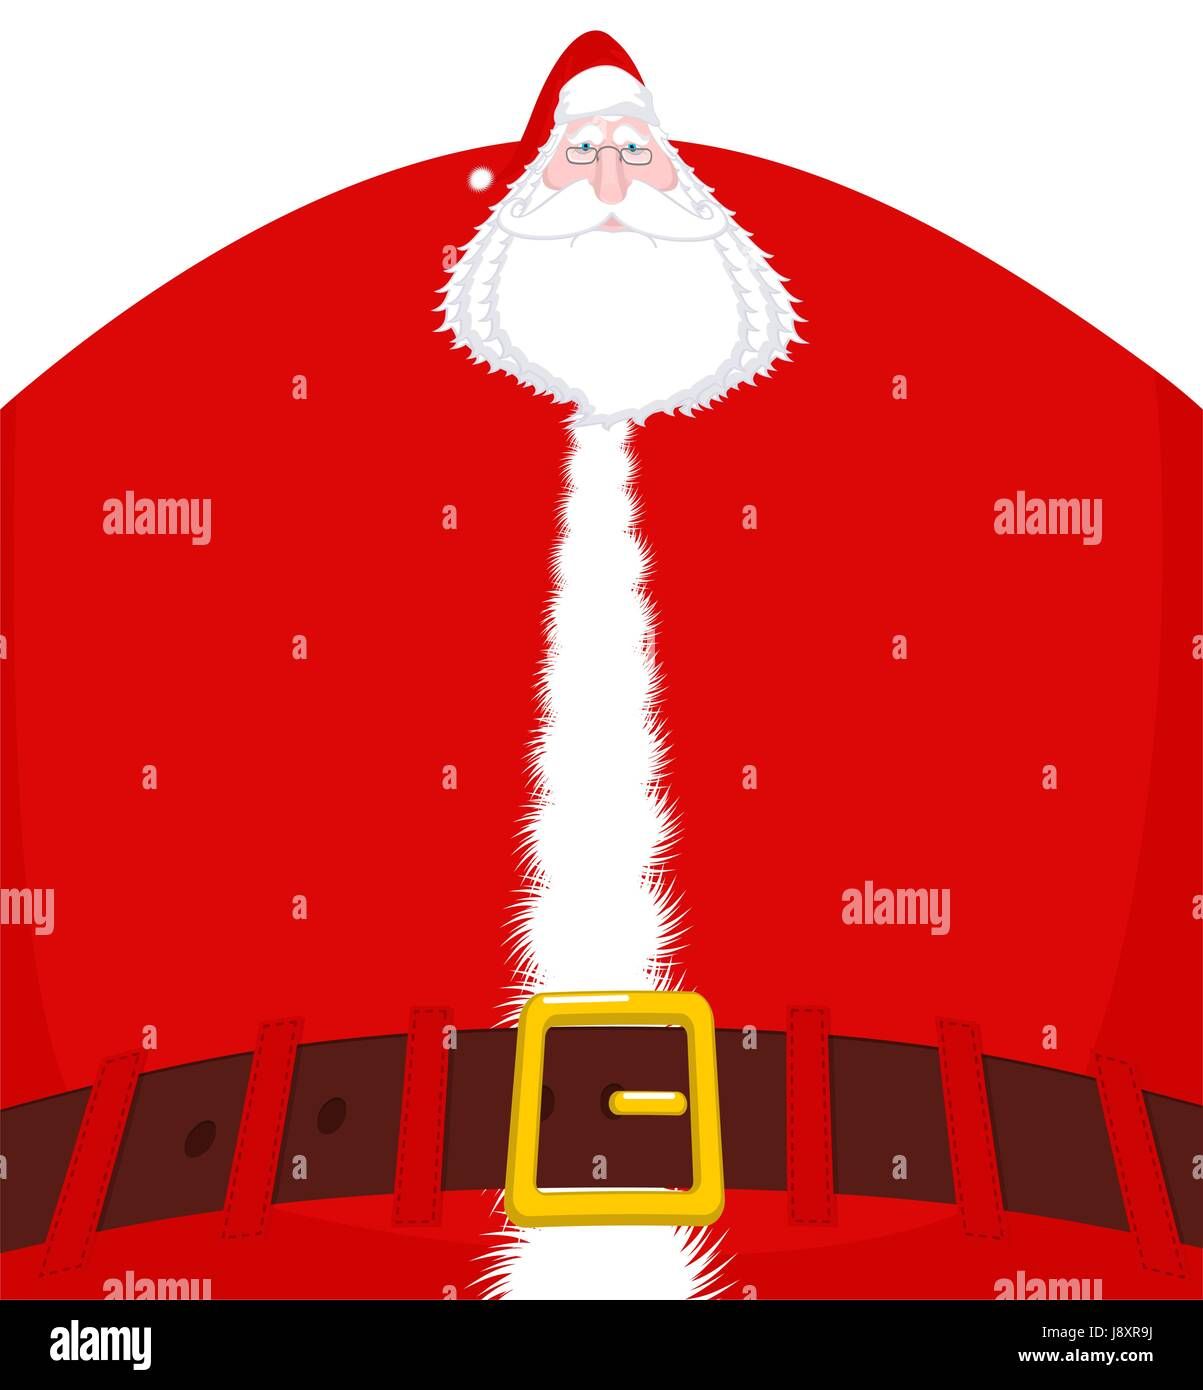 santa claus large and belt huge christmas grandfather enormous santa with beard in red suit illustration for new year - Santa Claus Belt